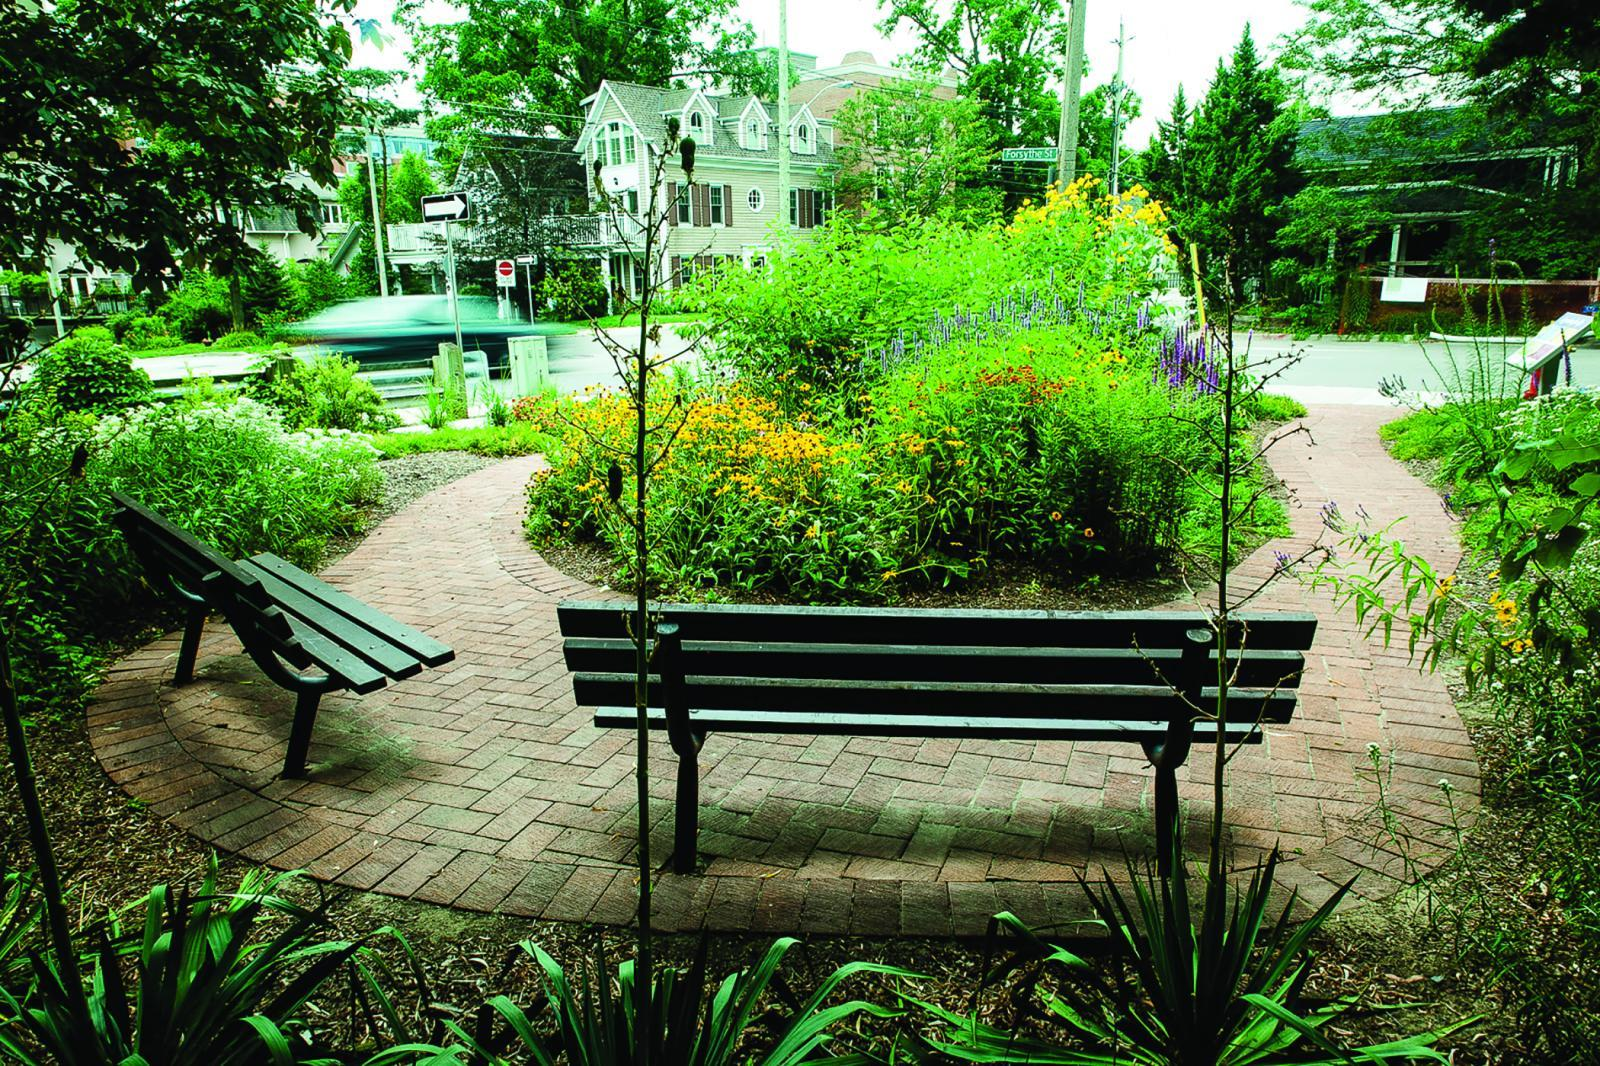 Member recognized for biodiversity garden